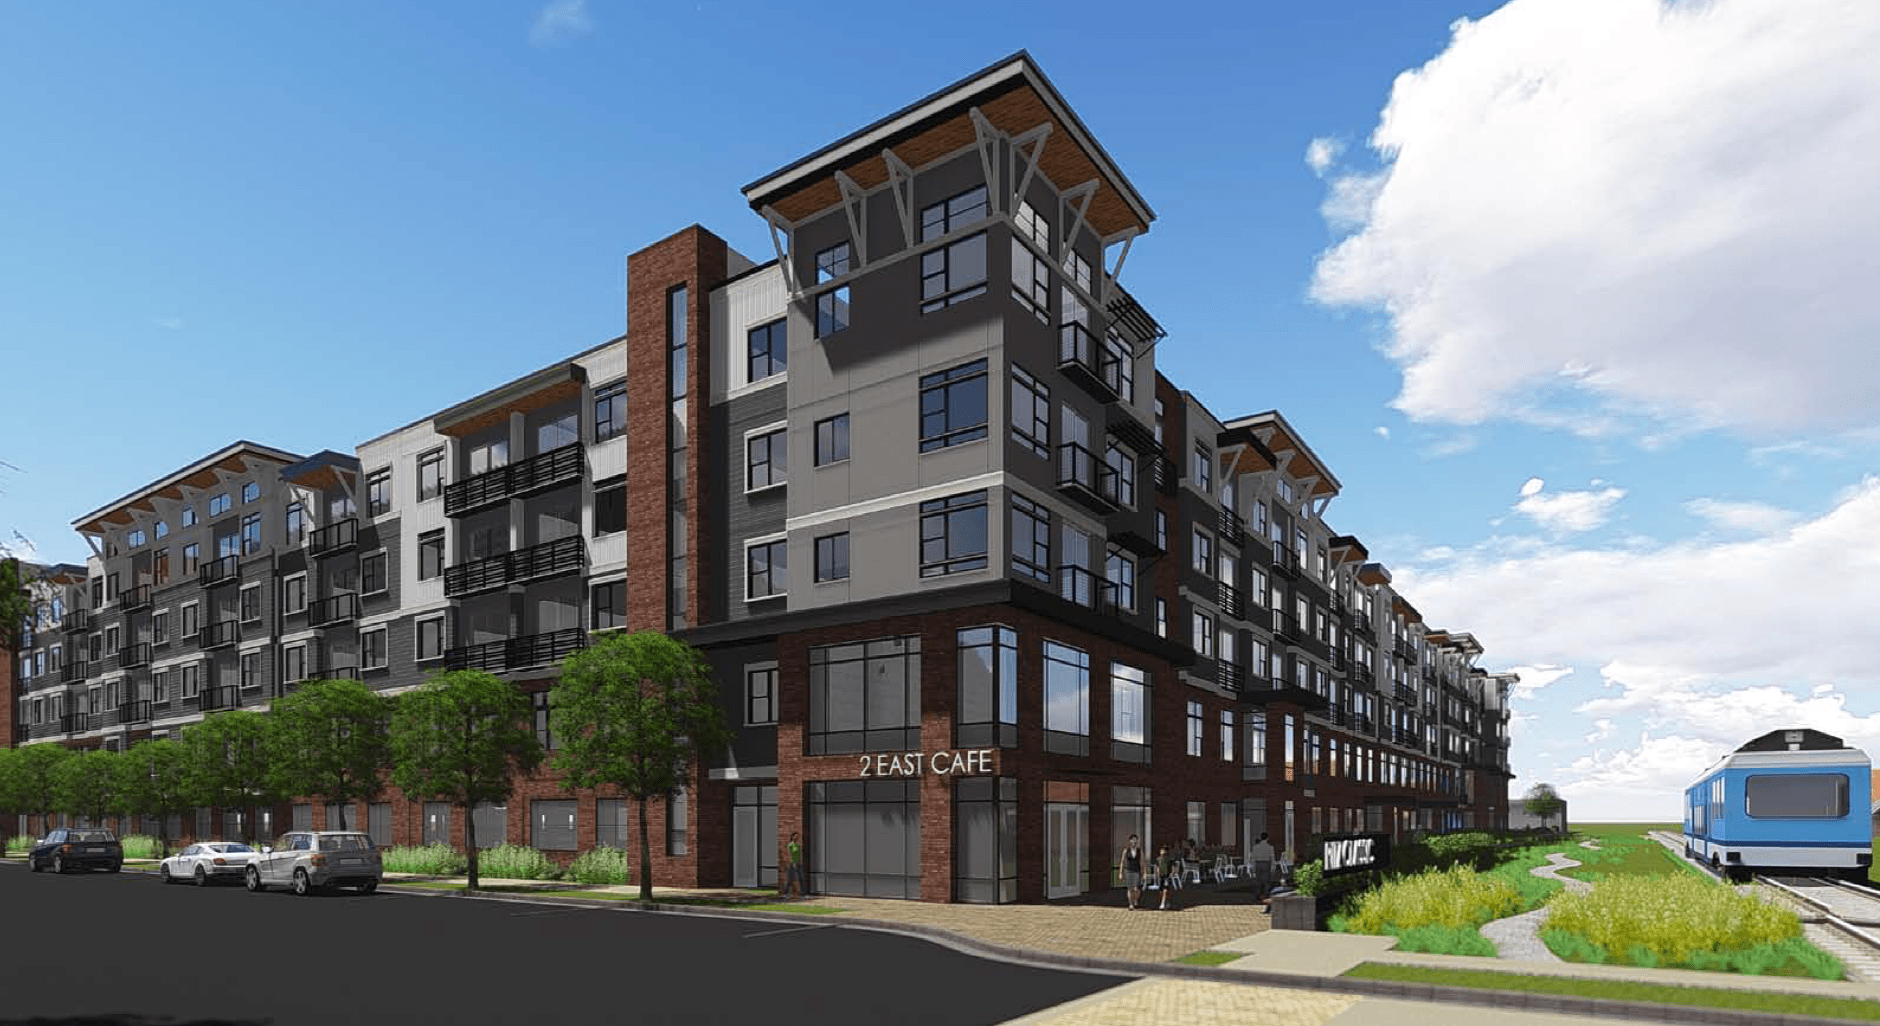 Rendering of the Ritz Classic Apartments